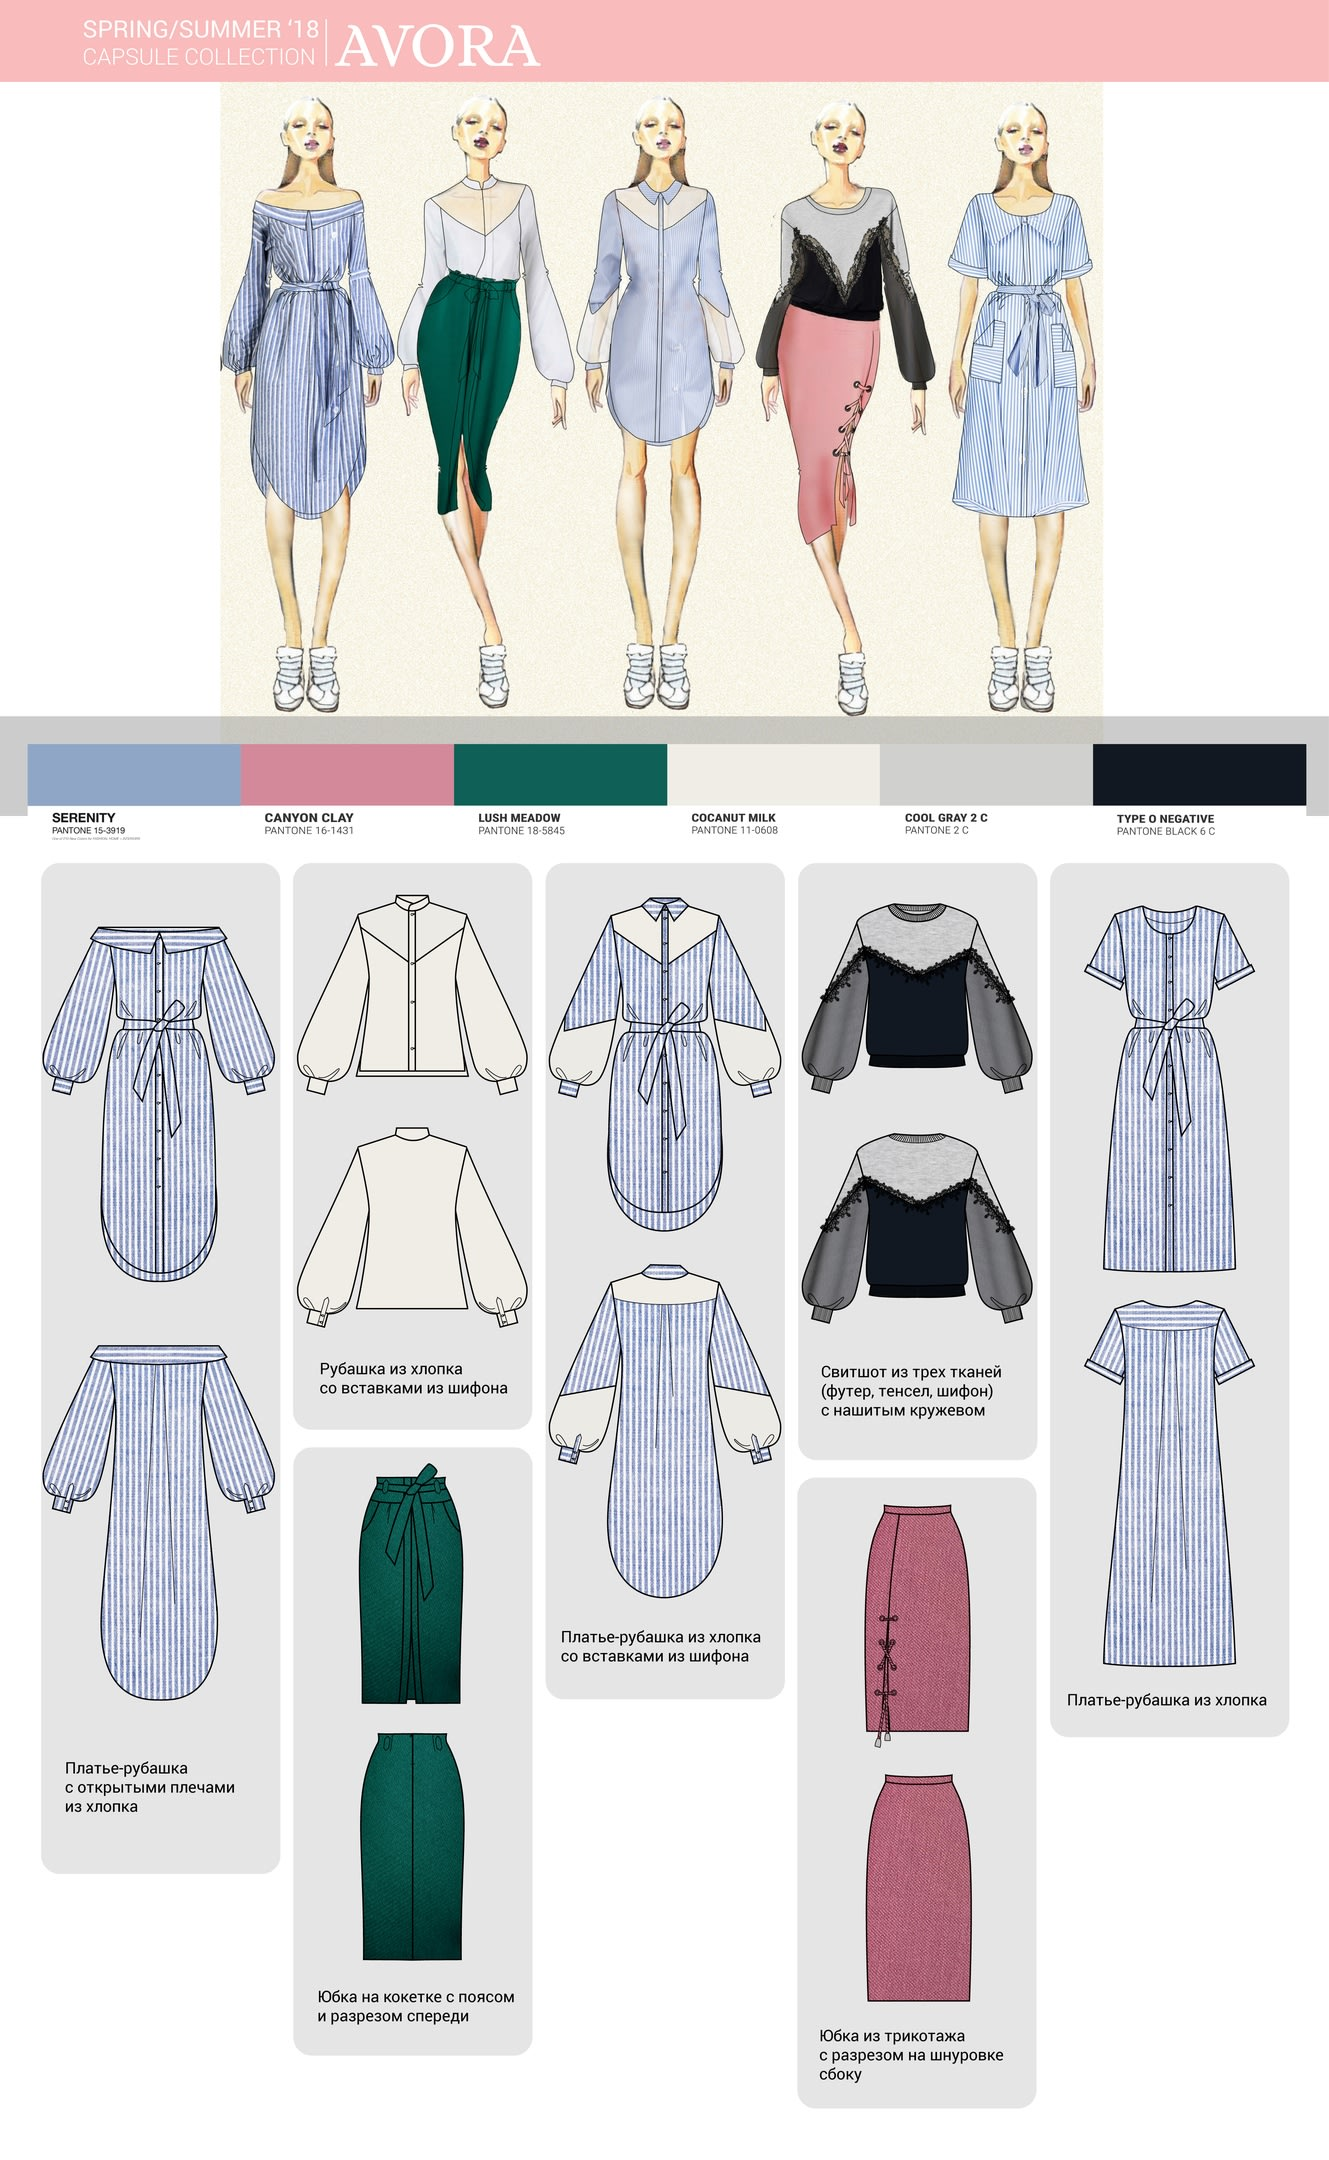 Make Fashion Technical Sketch Flat Drawings Of Clothes Bags In 24 Hours By Antoninavo